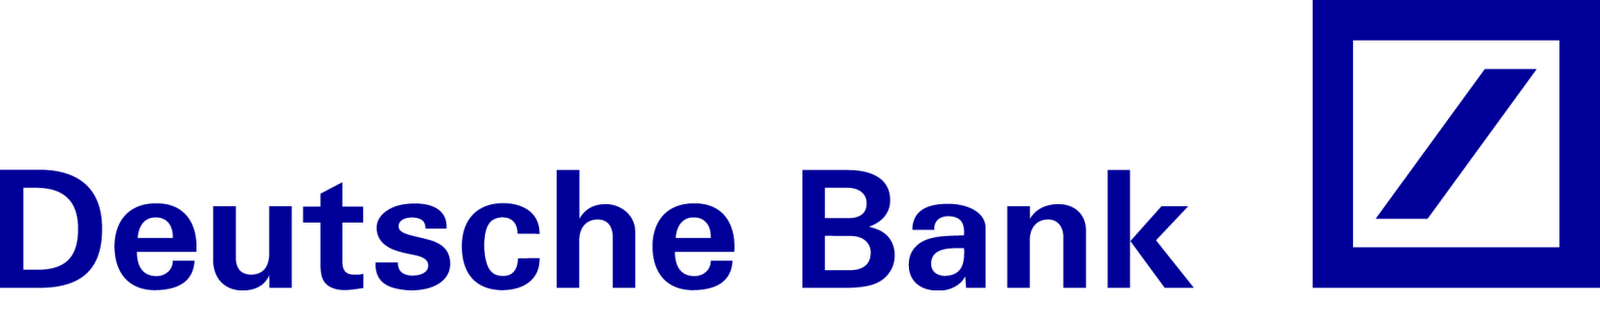 1000+ ideas about Deutsche Bank Logo on Pinterest.